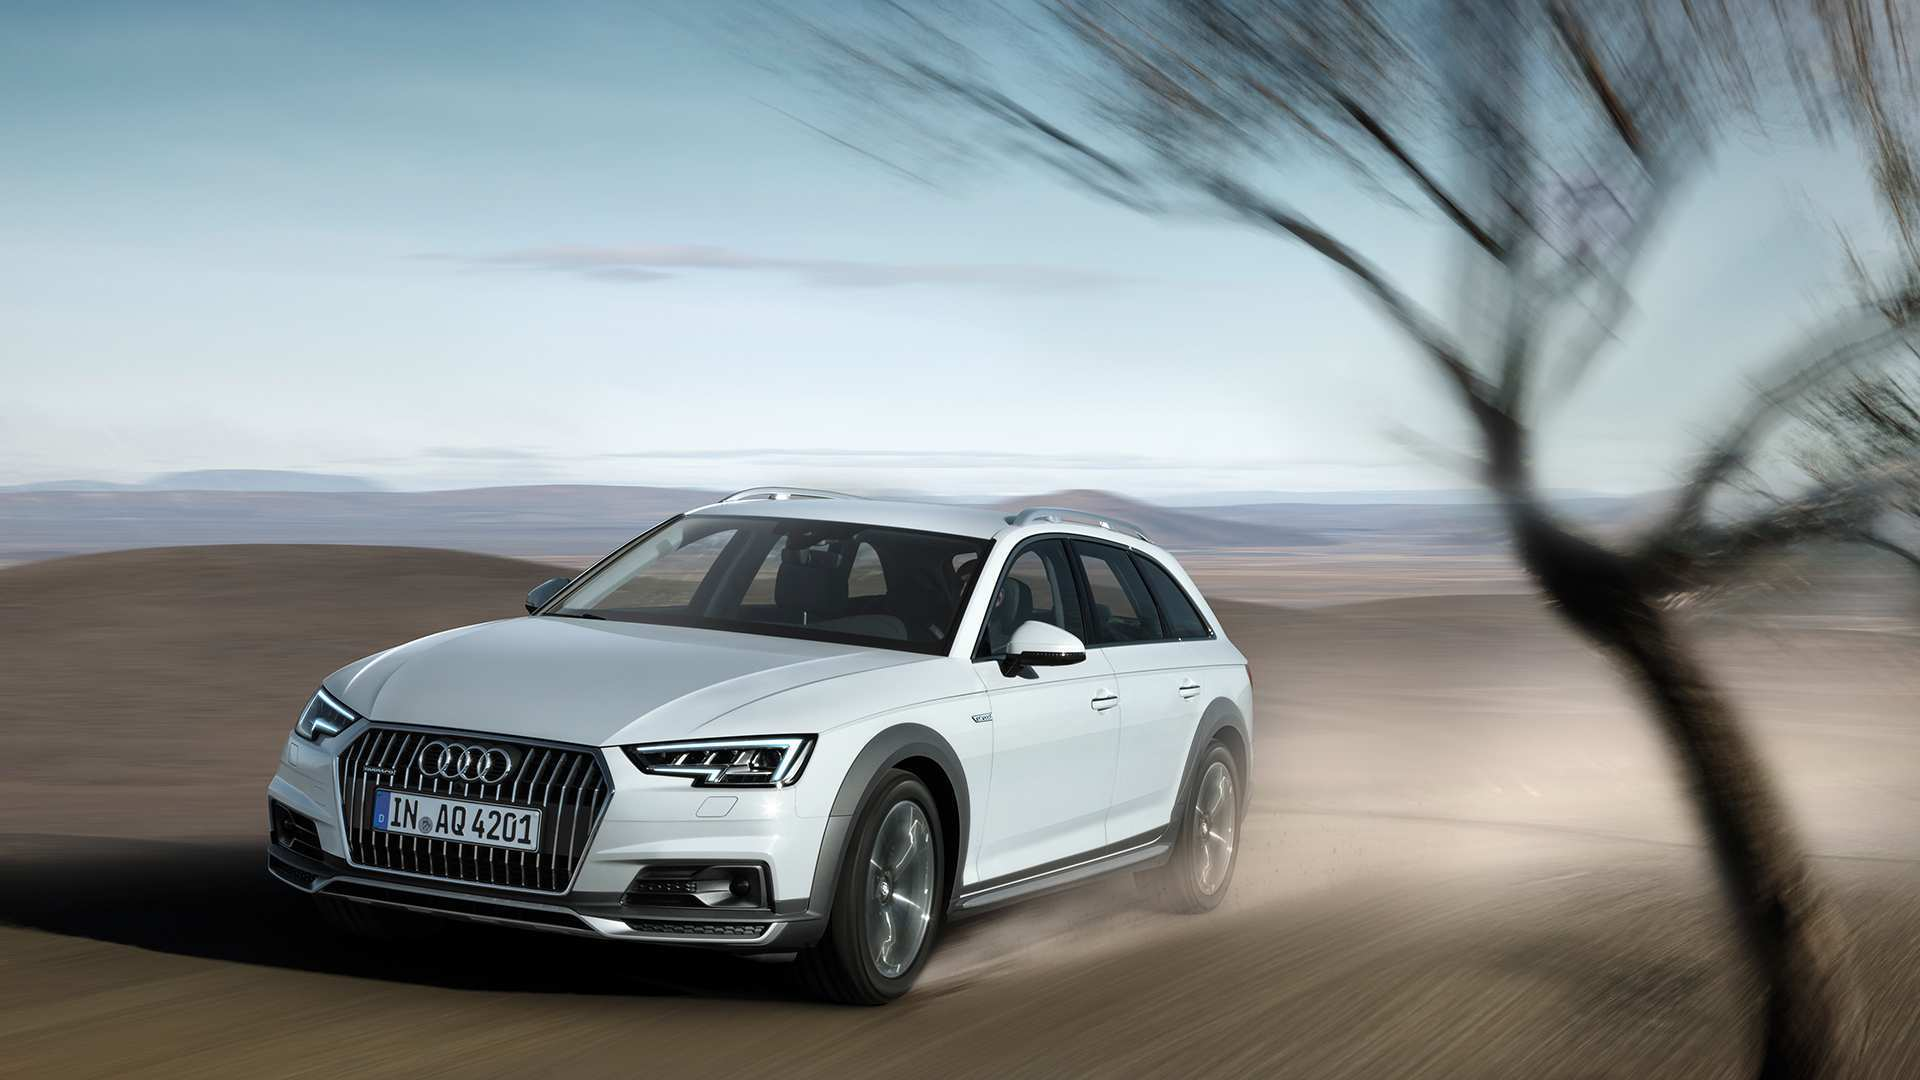 54 The Best Audi A4 Allroad 2020 Redesign And Concept